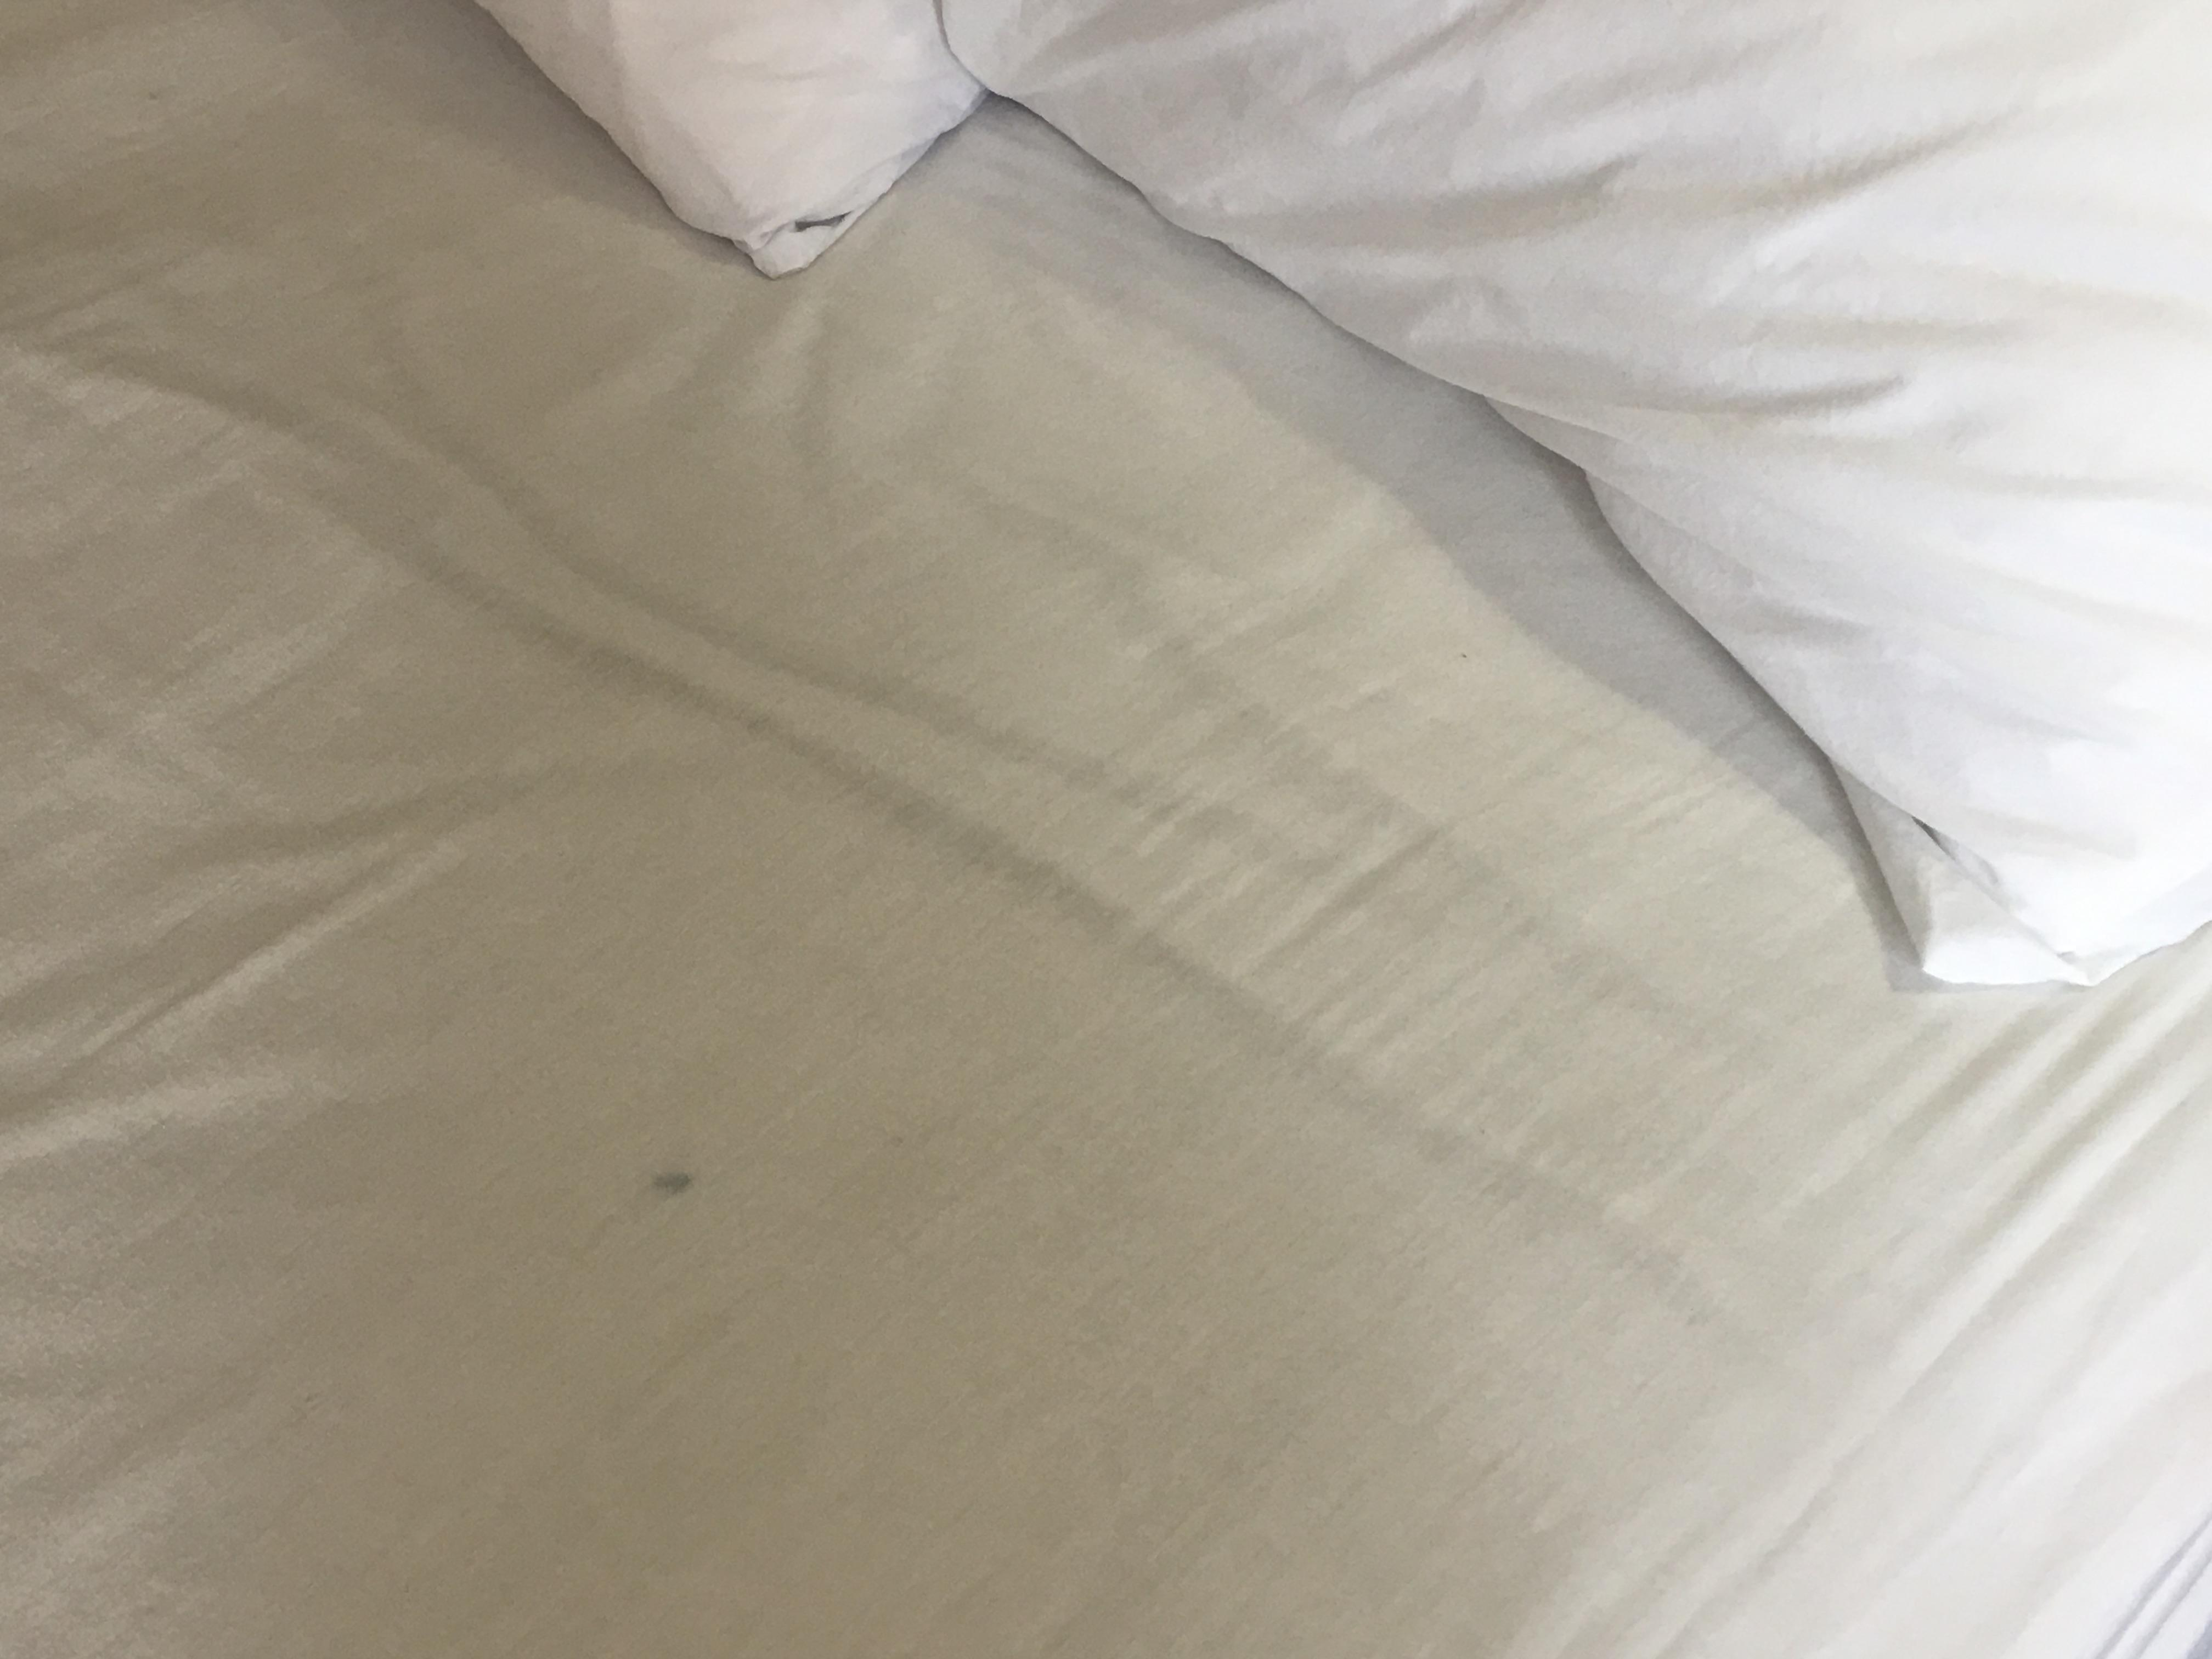 Unknown spot on bed